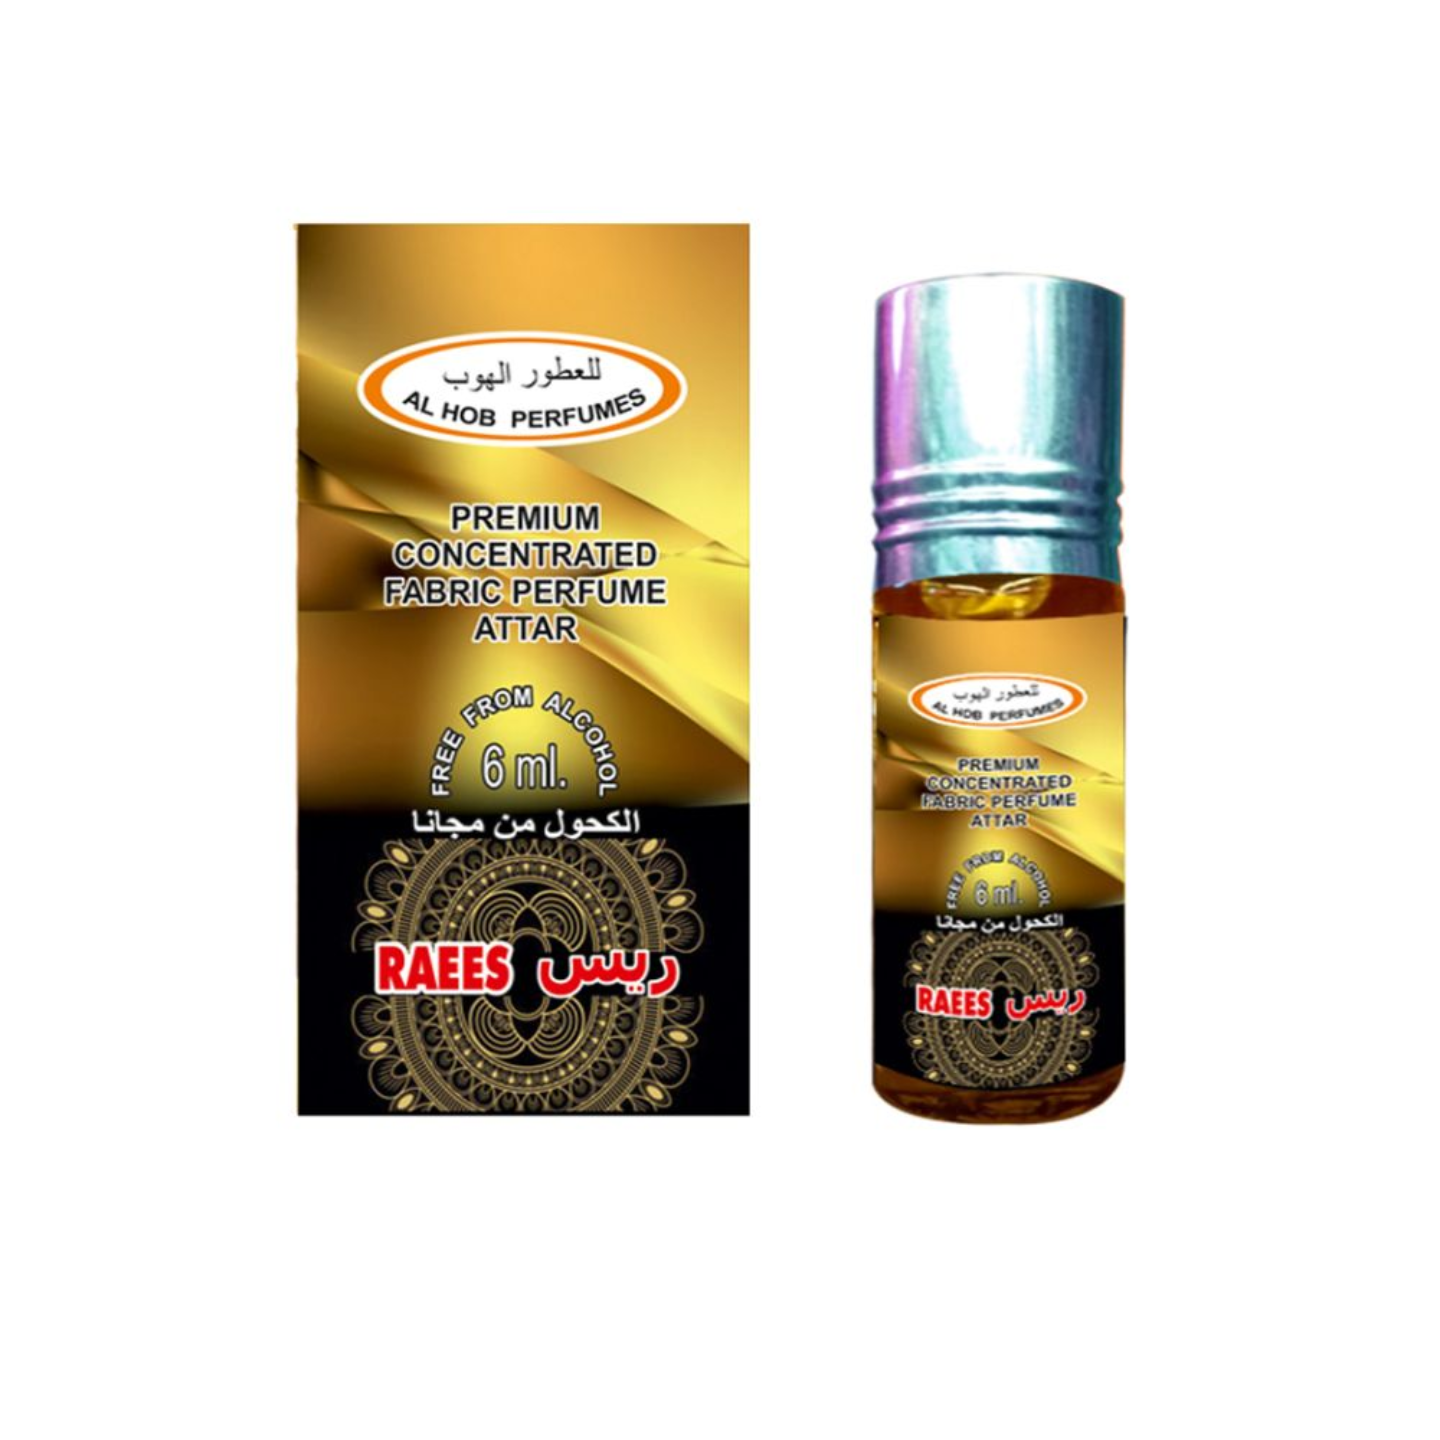 RAEES ATTAR BY AL HOB PERFUMES